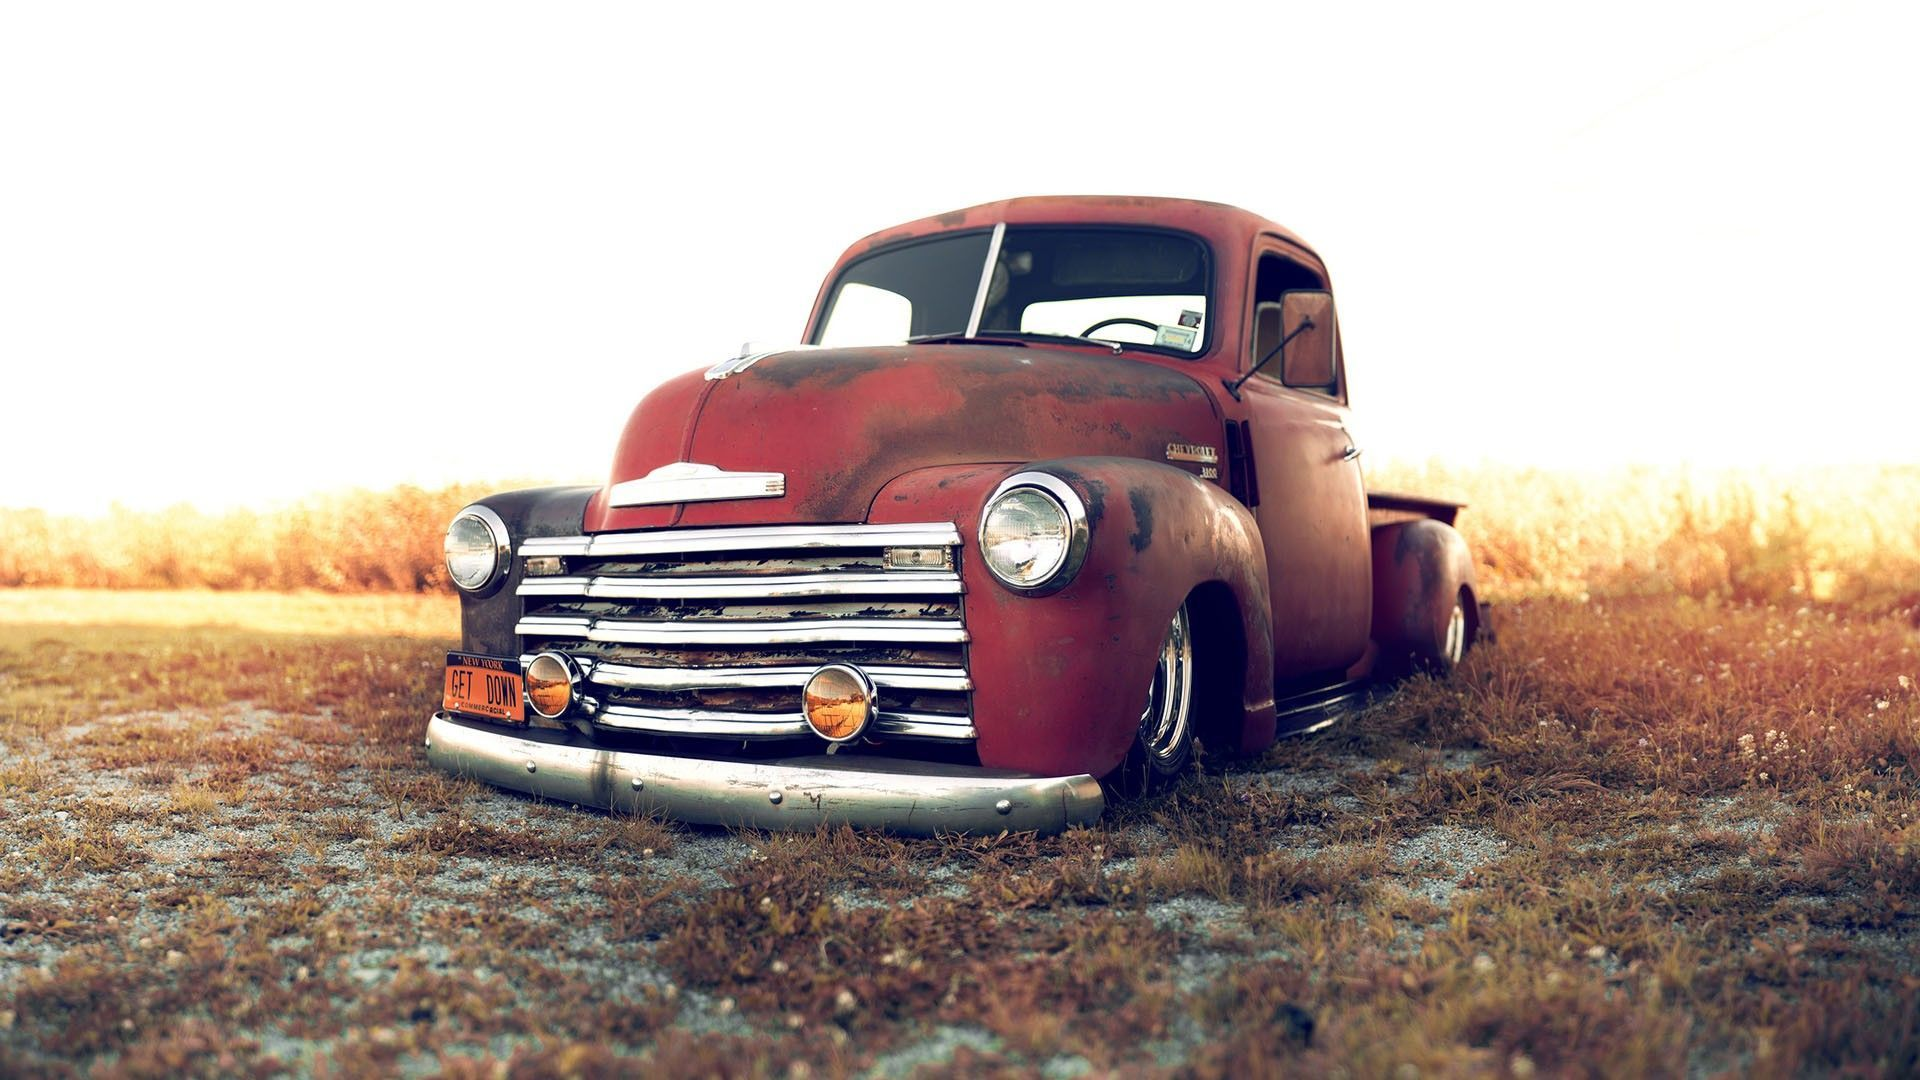 Classic Truck Wallpapers Top Free Classic Truck Backgrounds